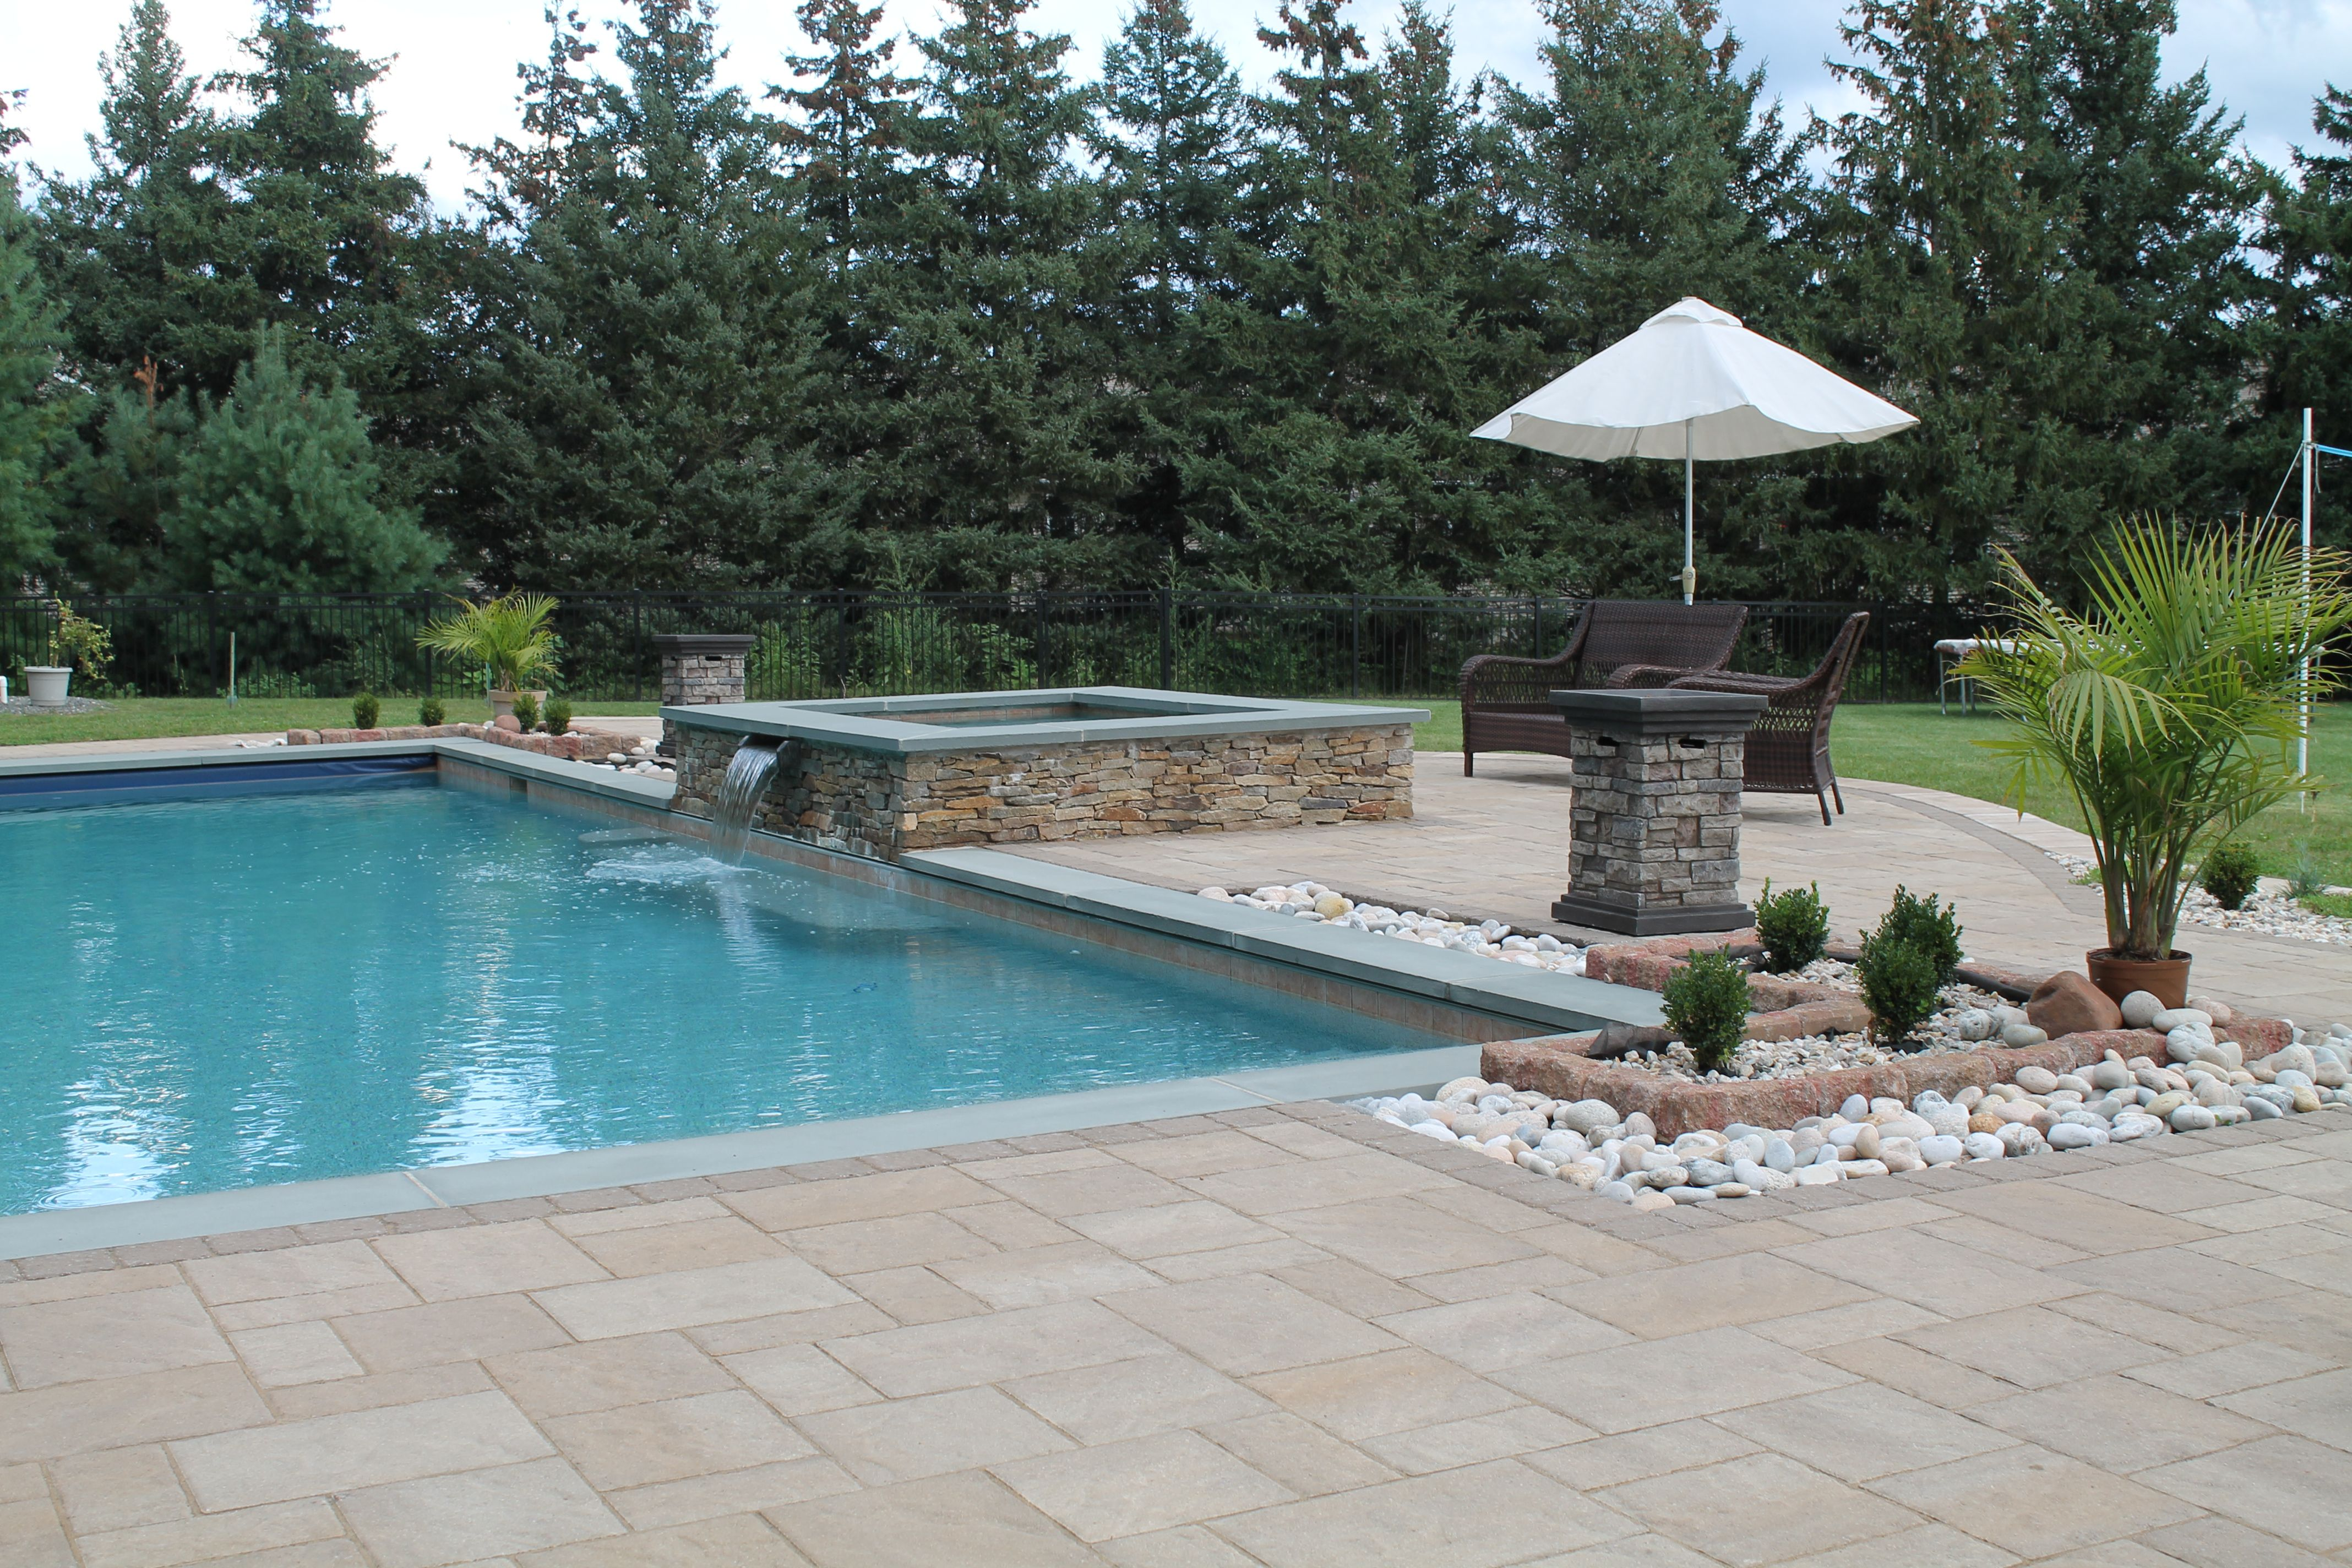 Concrete paver pool patio by Bahler Brothers with landscaping, fire ...